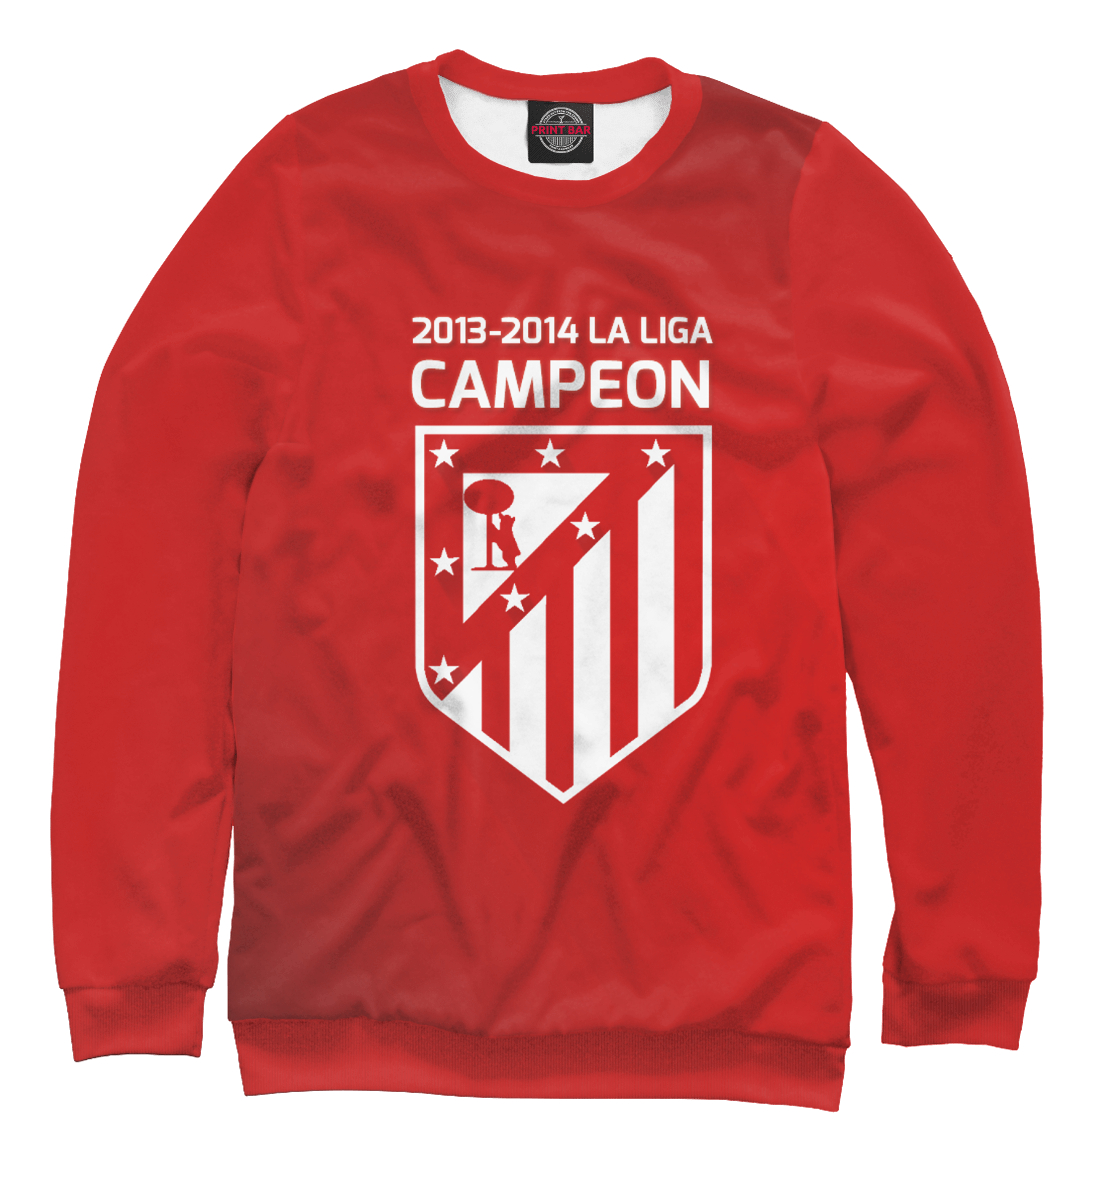 Купить Campeon La Liga 2013-2014, Printbar, Свитшоты, APD-448643-swi-2